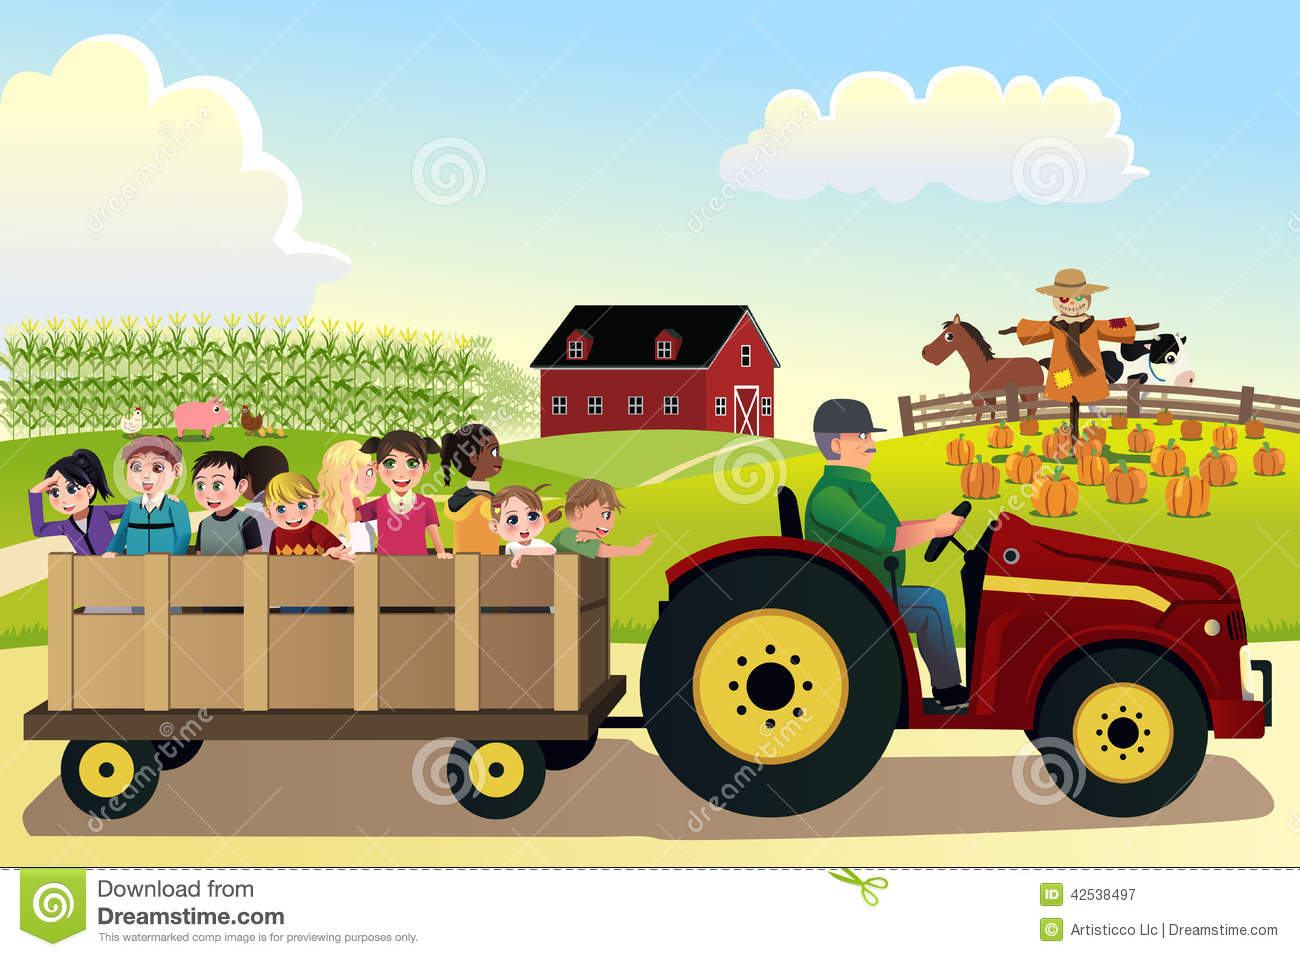 Clip Art Hayride Clipart fall hayride clipart kid vector illustration of kids going on a in farm with corn